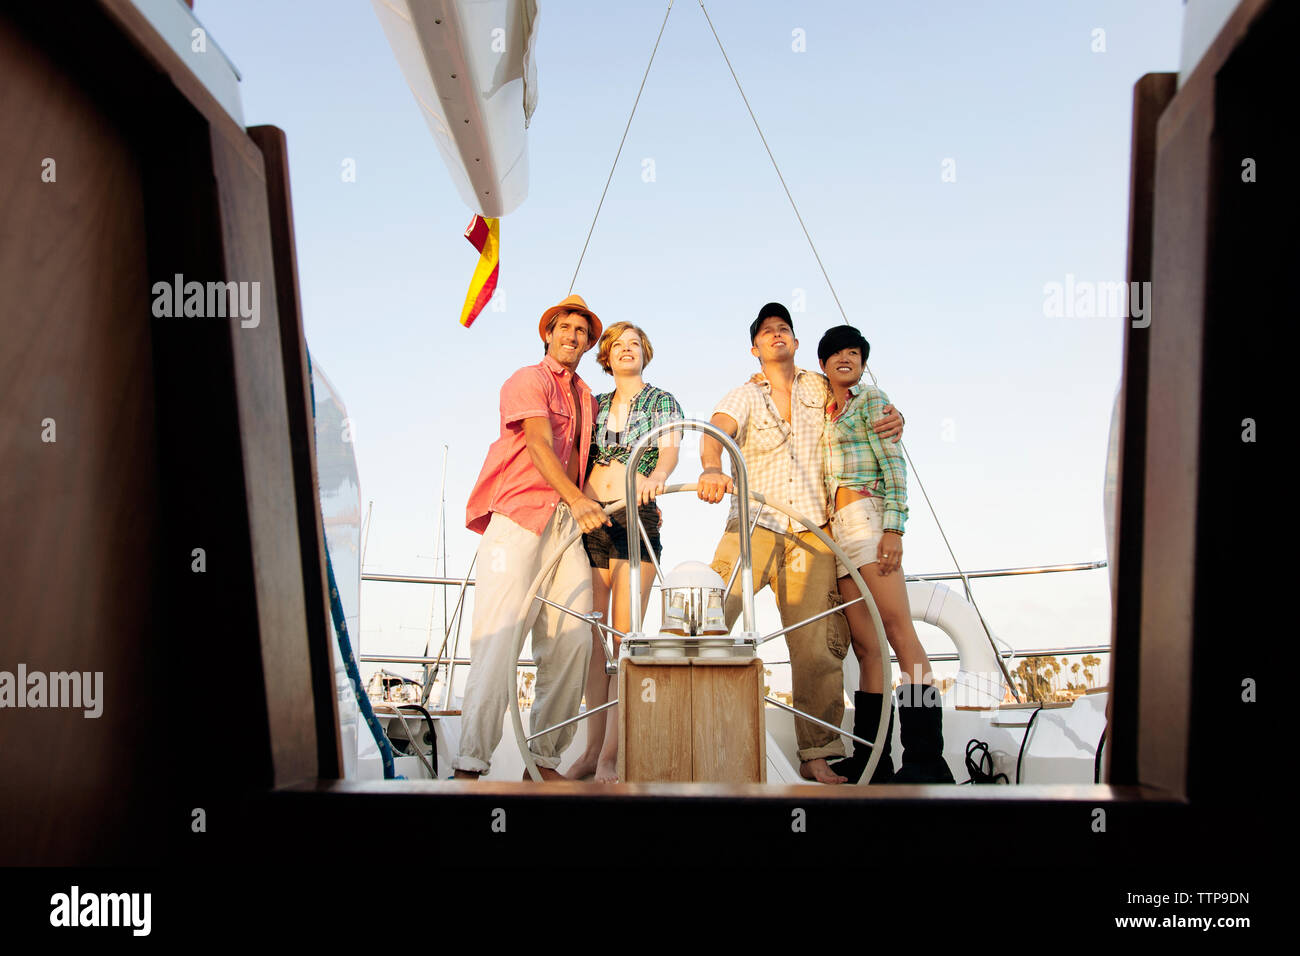 Happy couples standing by steering wheel on nautical vessel - Stock Image